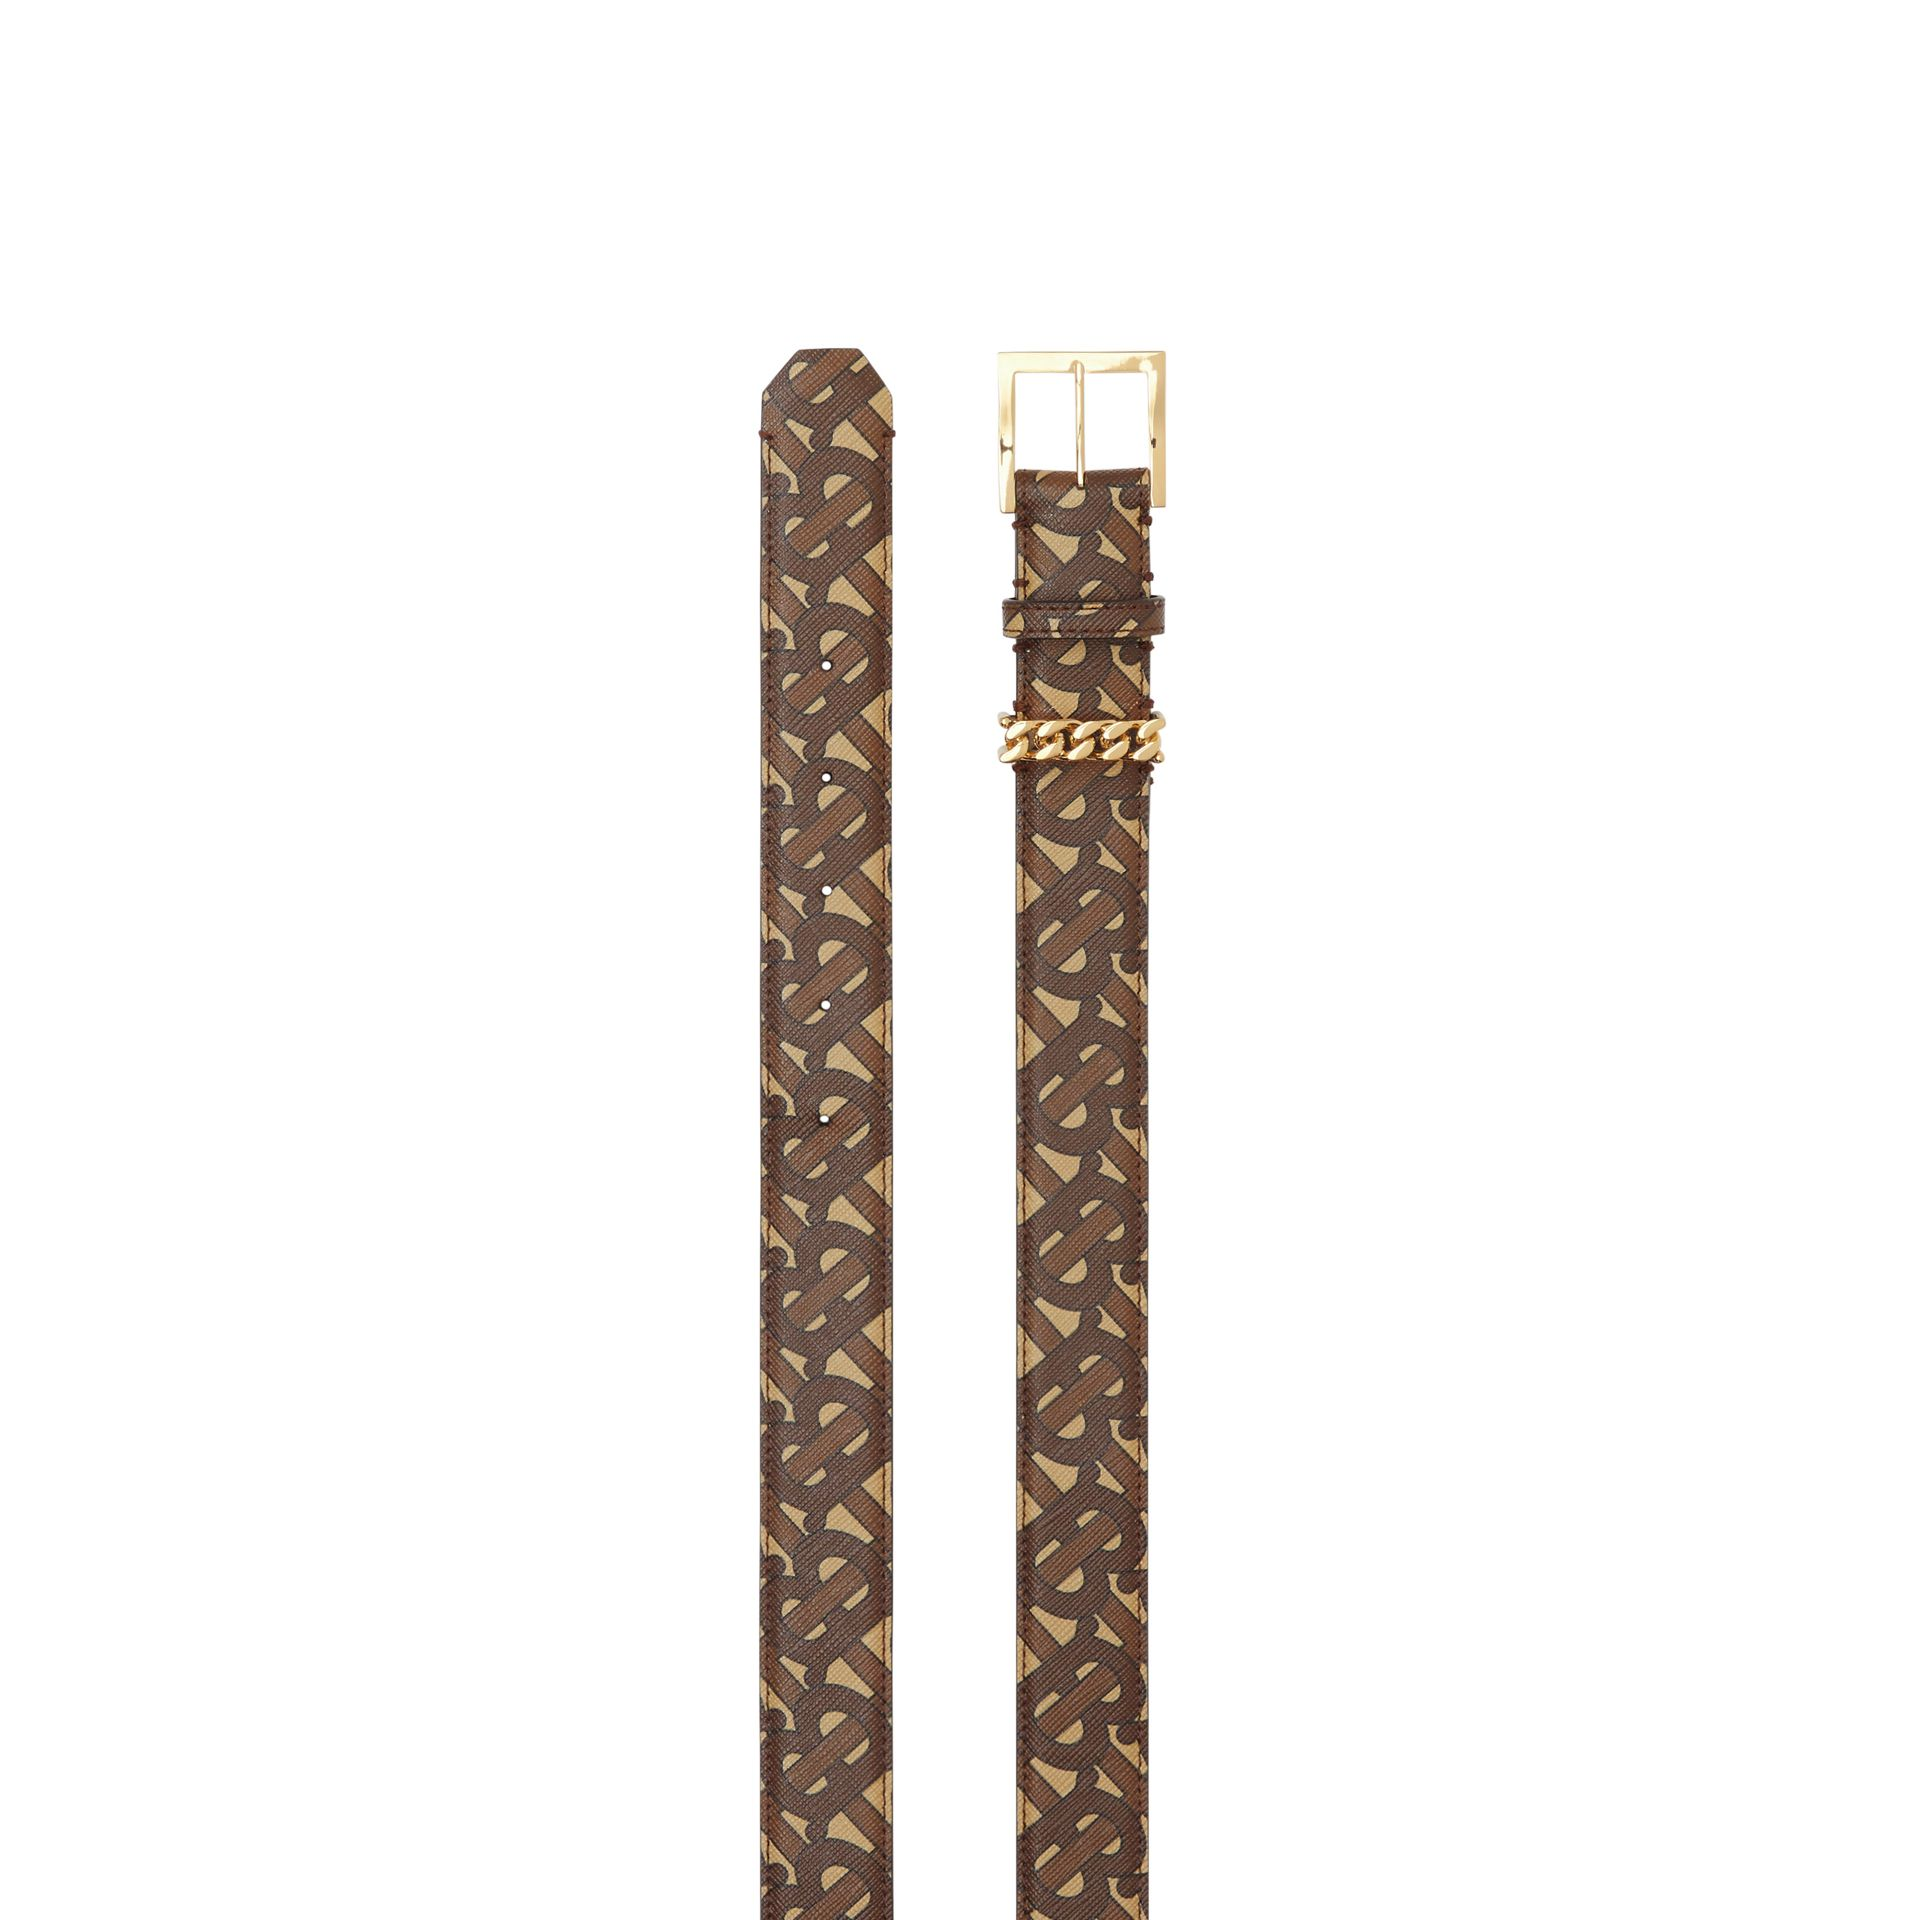 Chain Detail Monogram Print E-canvas Belt in Bridle Brown - Women | Burberry - gallery image 5